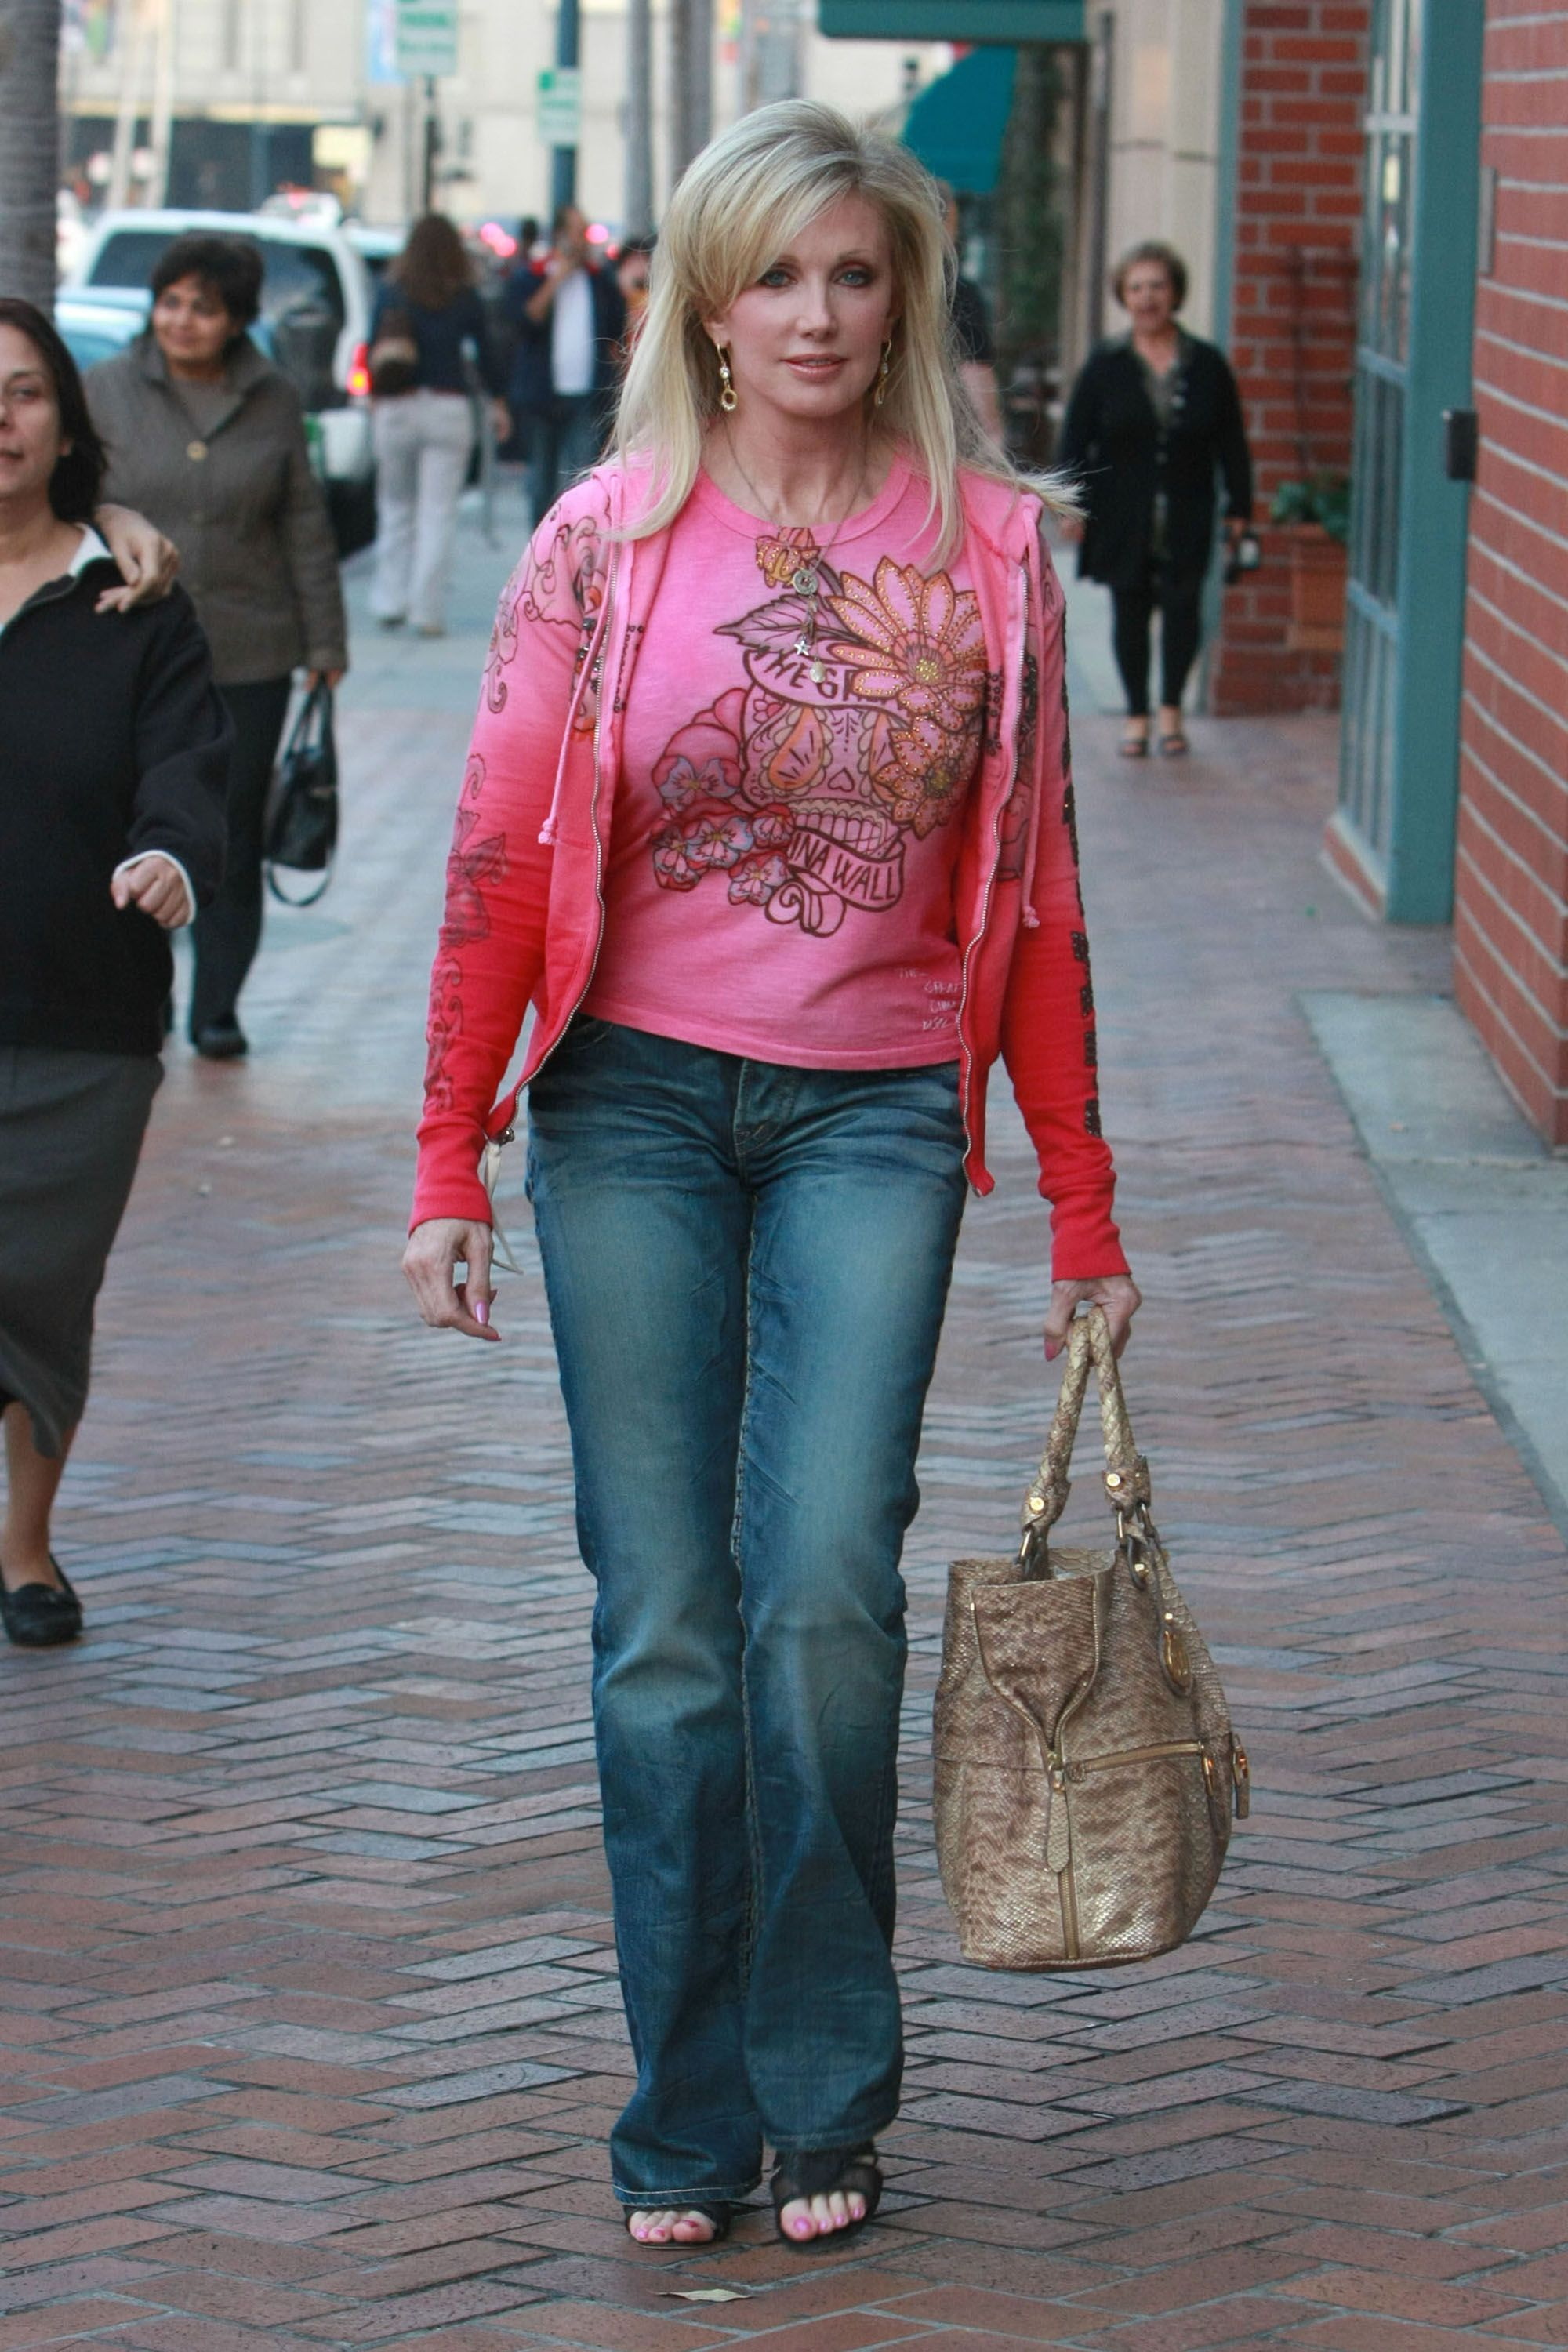 morgan fairchild feet pics